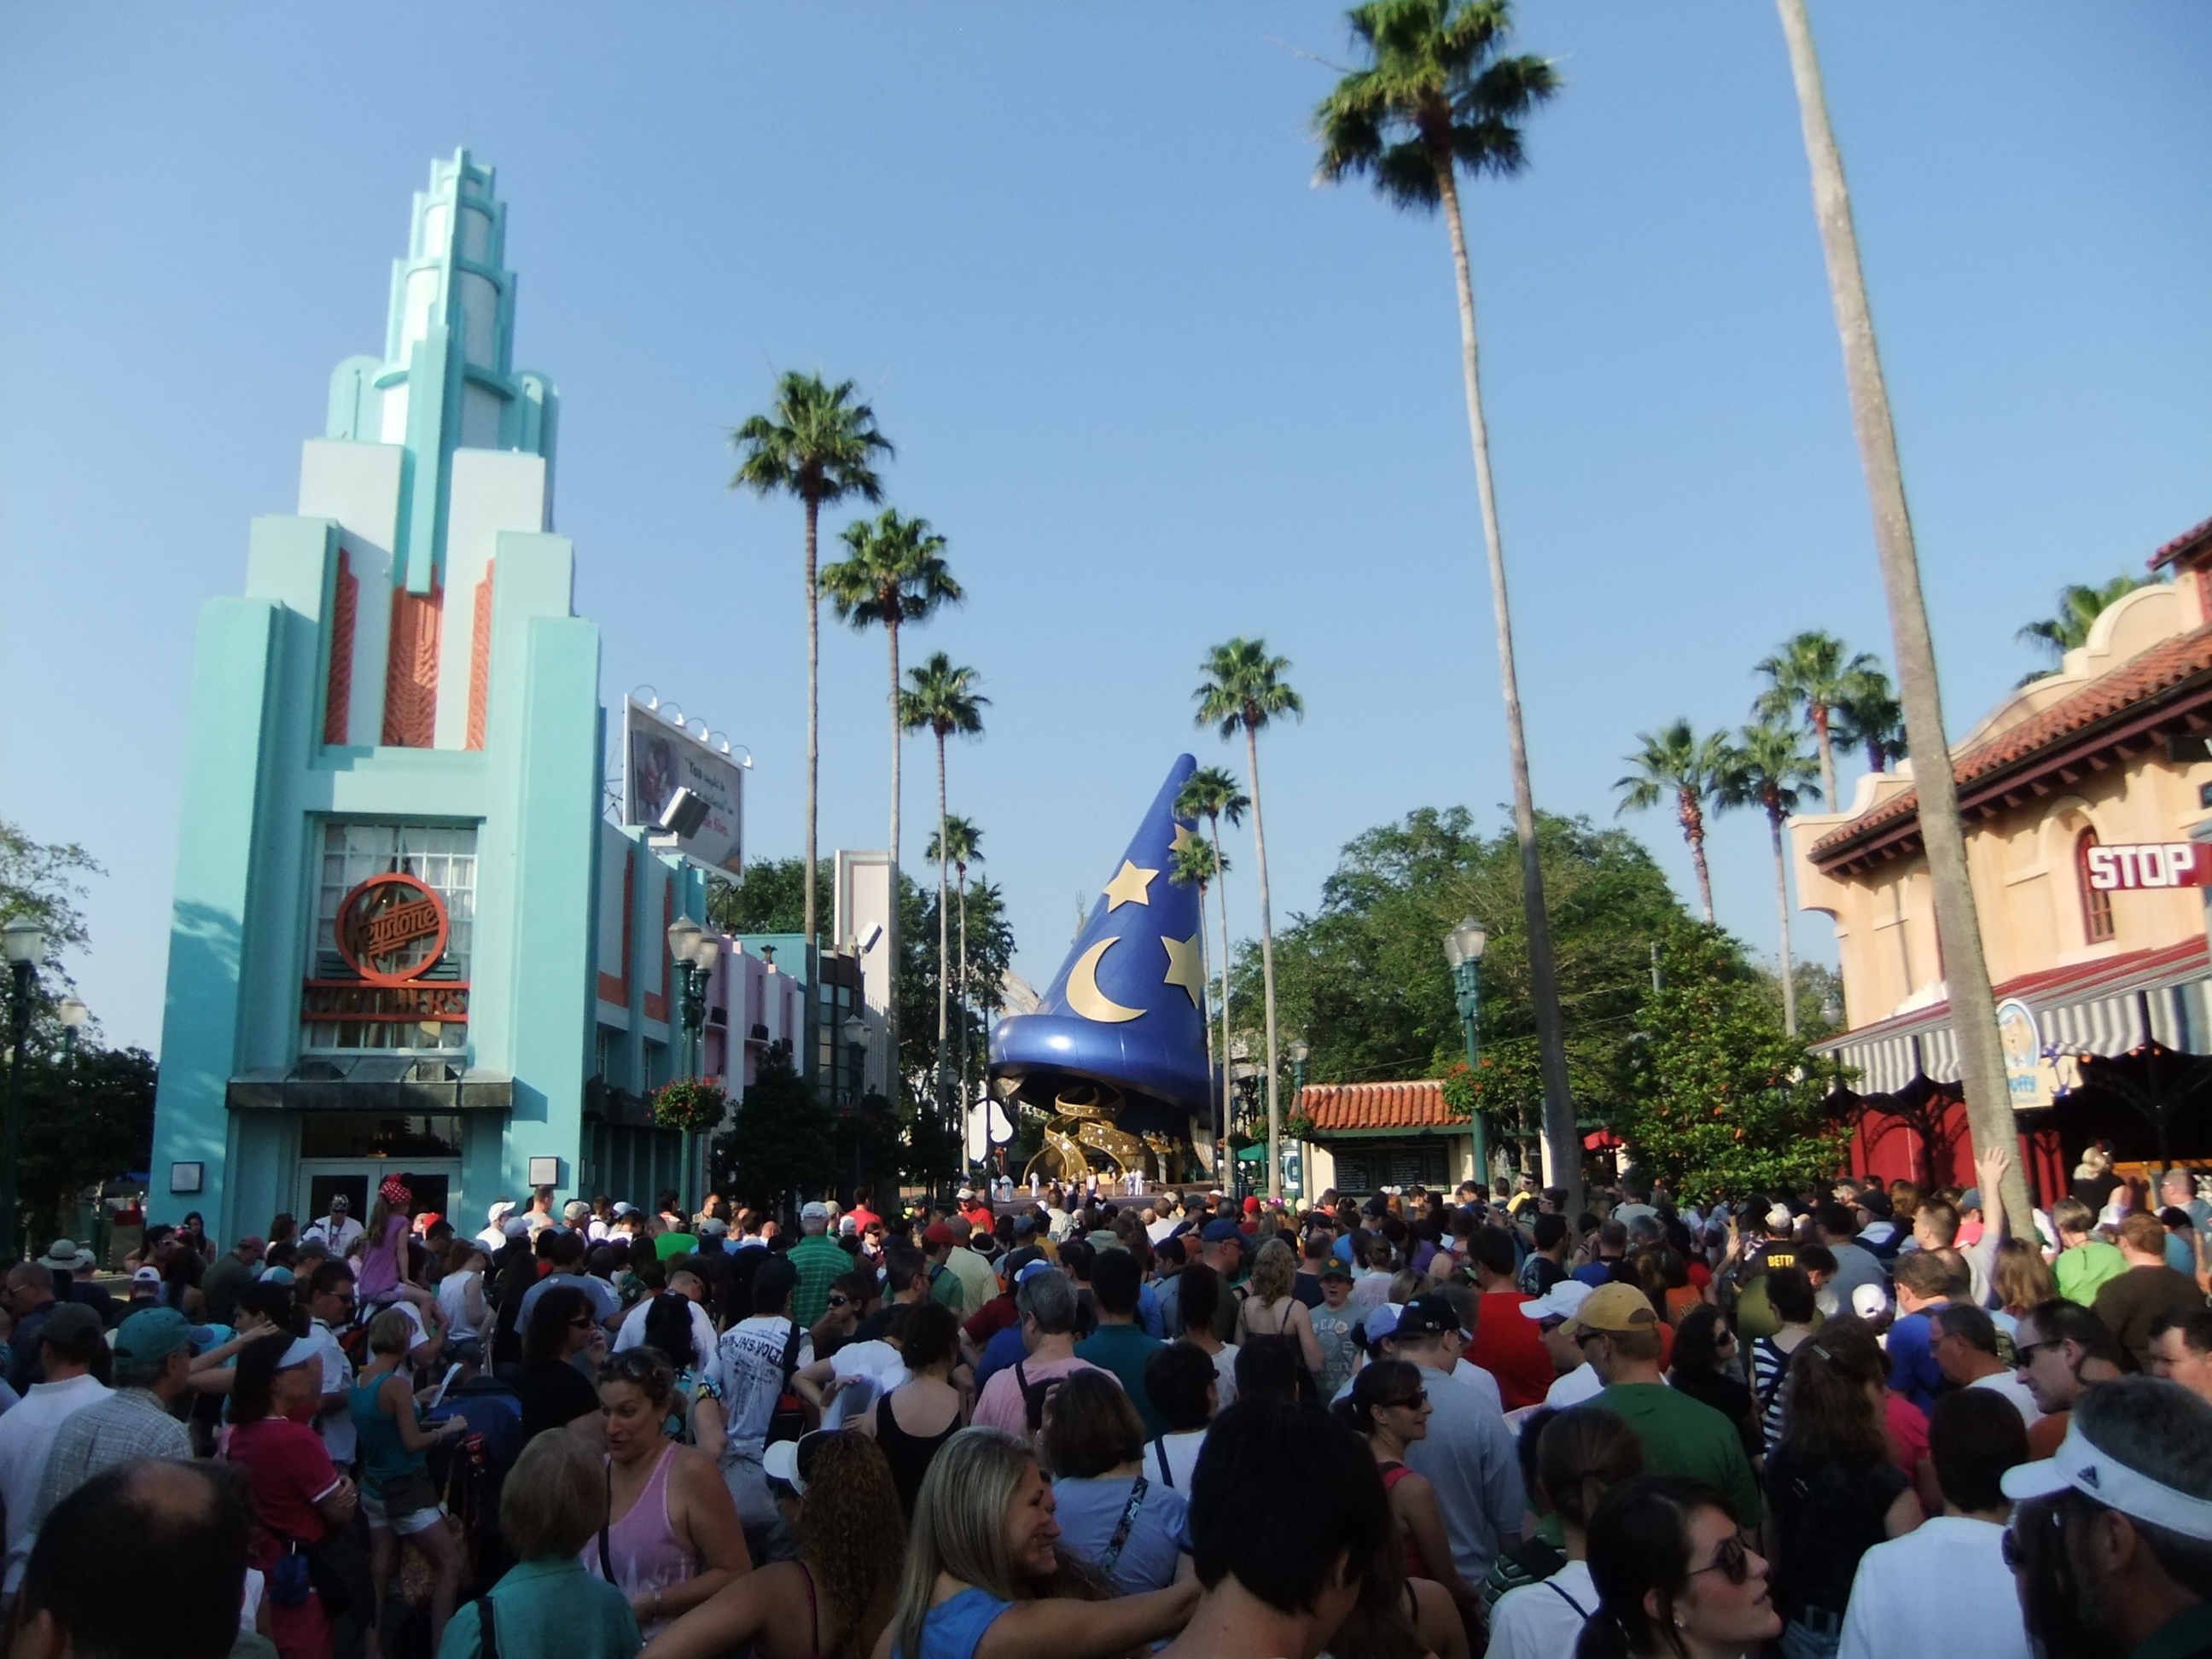 Hollywood wdw.jpg